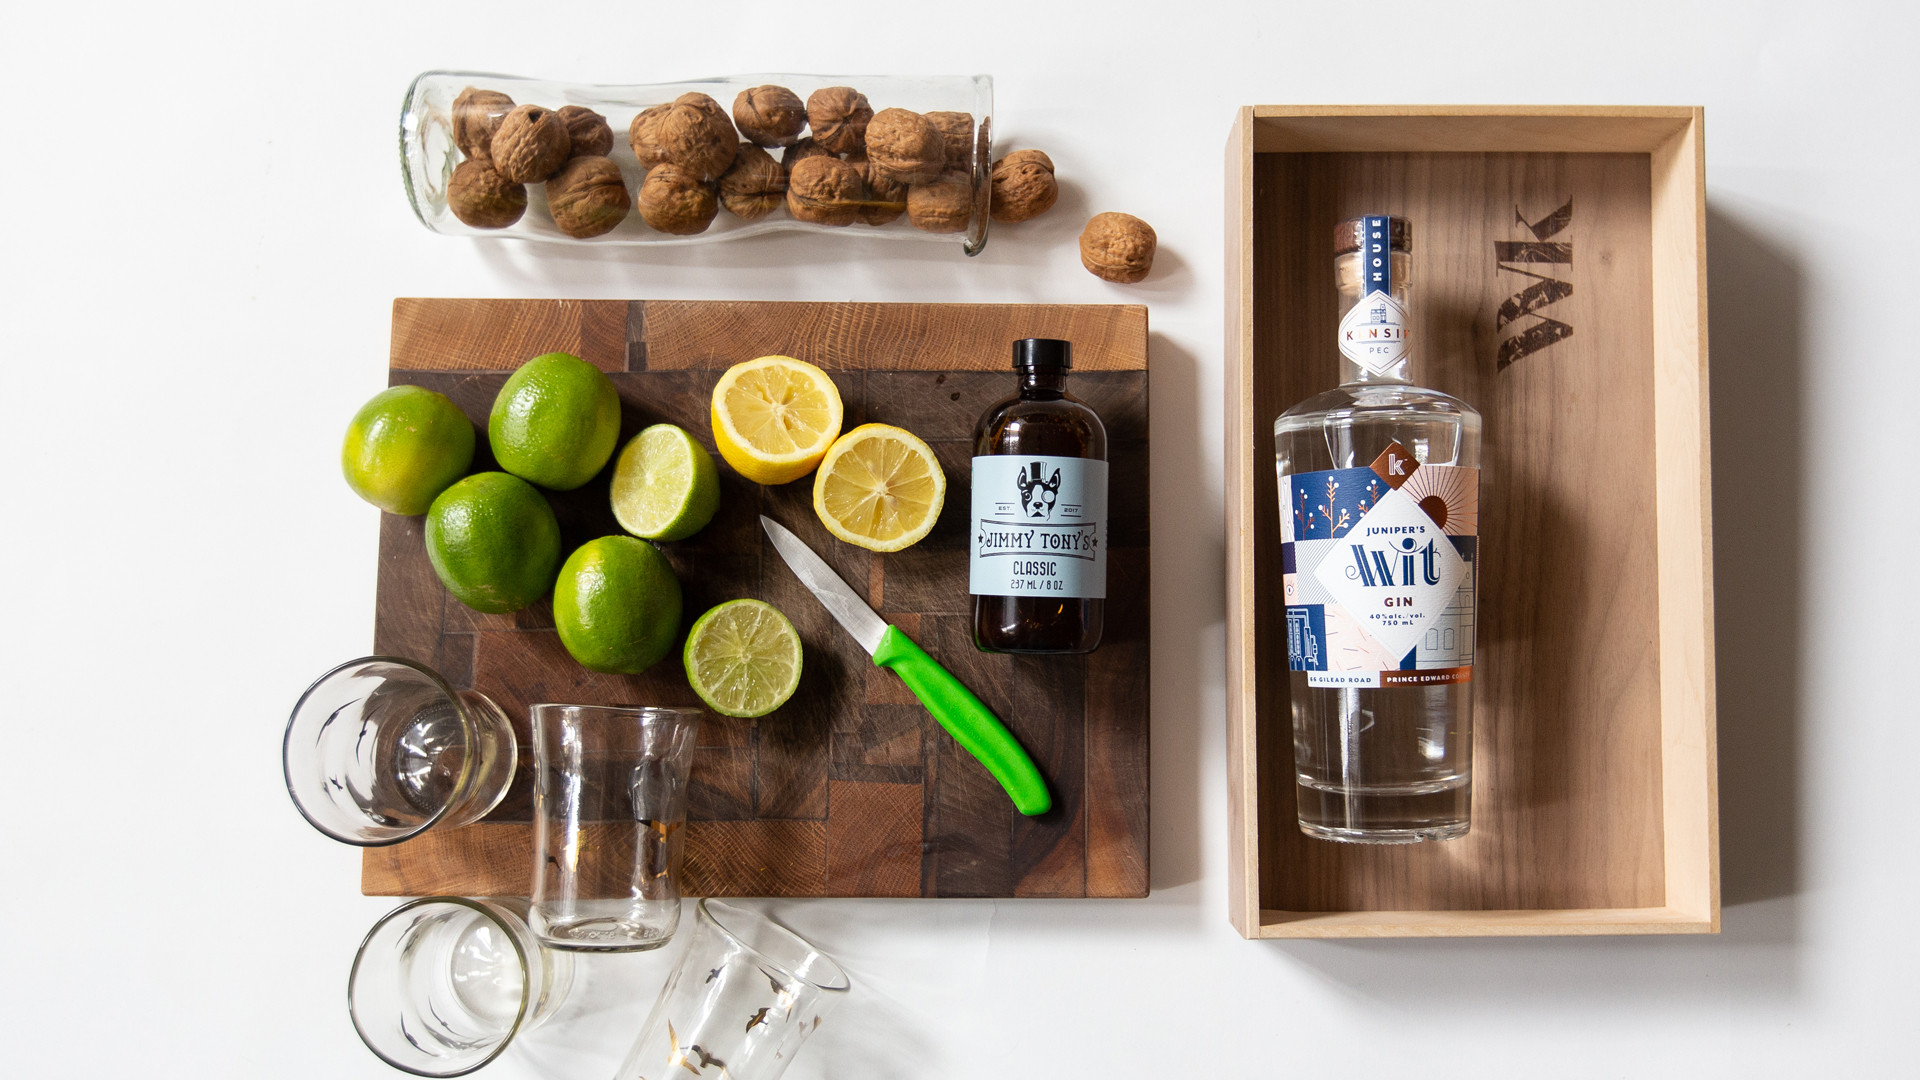 Wonderkind unique local gift sets made in Canada | A gin and tonic gift set